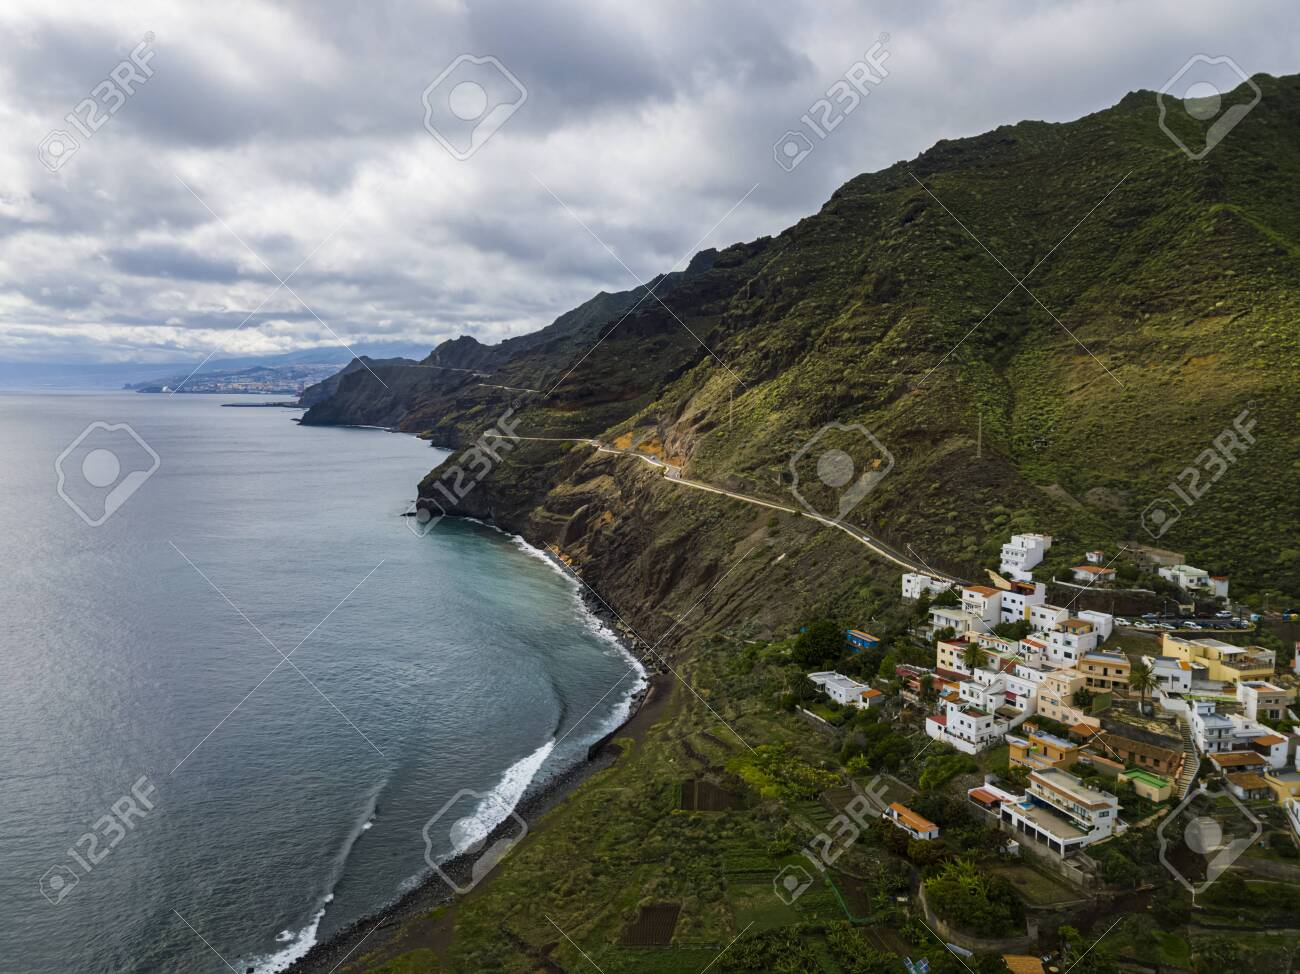 Aerial view of the small town Igueste De San Andres in the northern part of Tenerfie, Canary Islands, Spain - 137602123